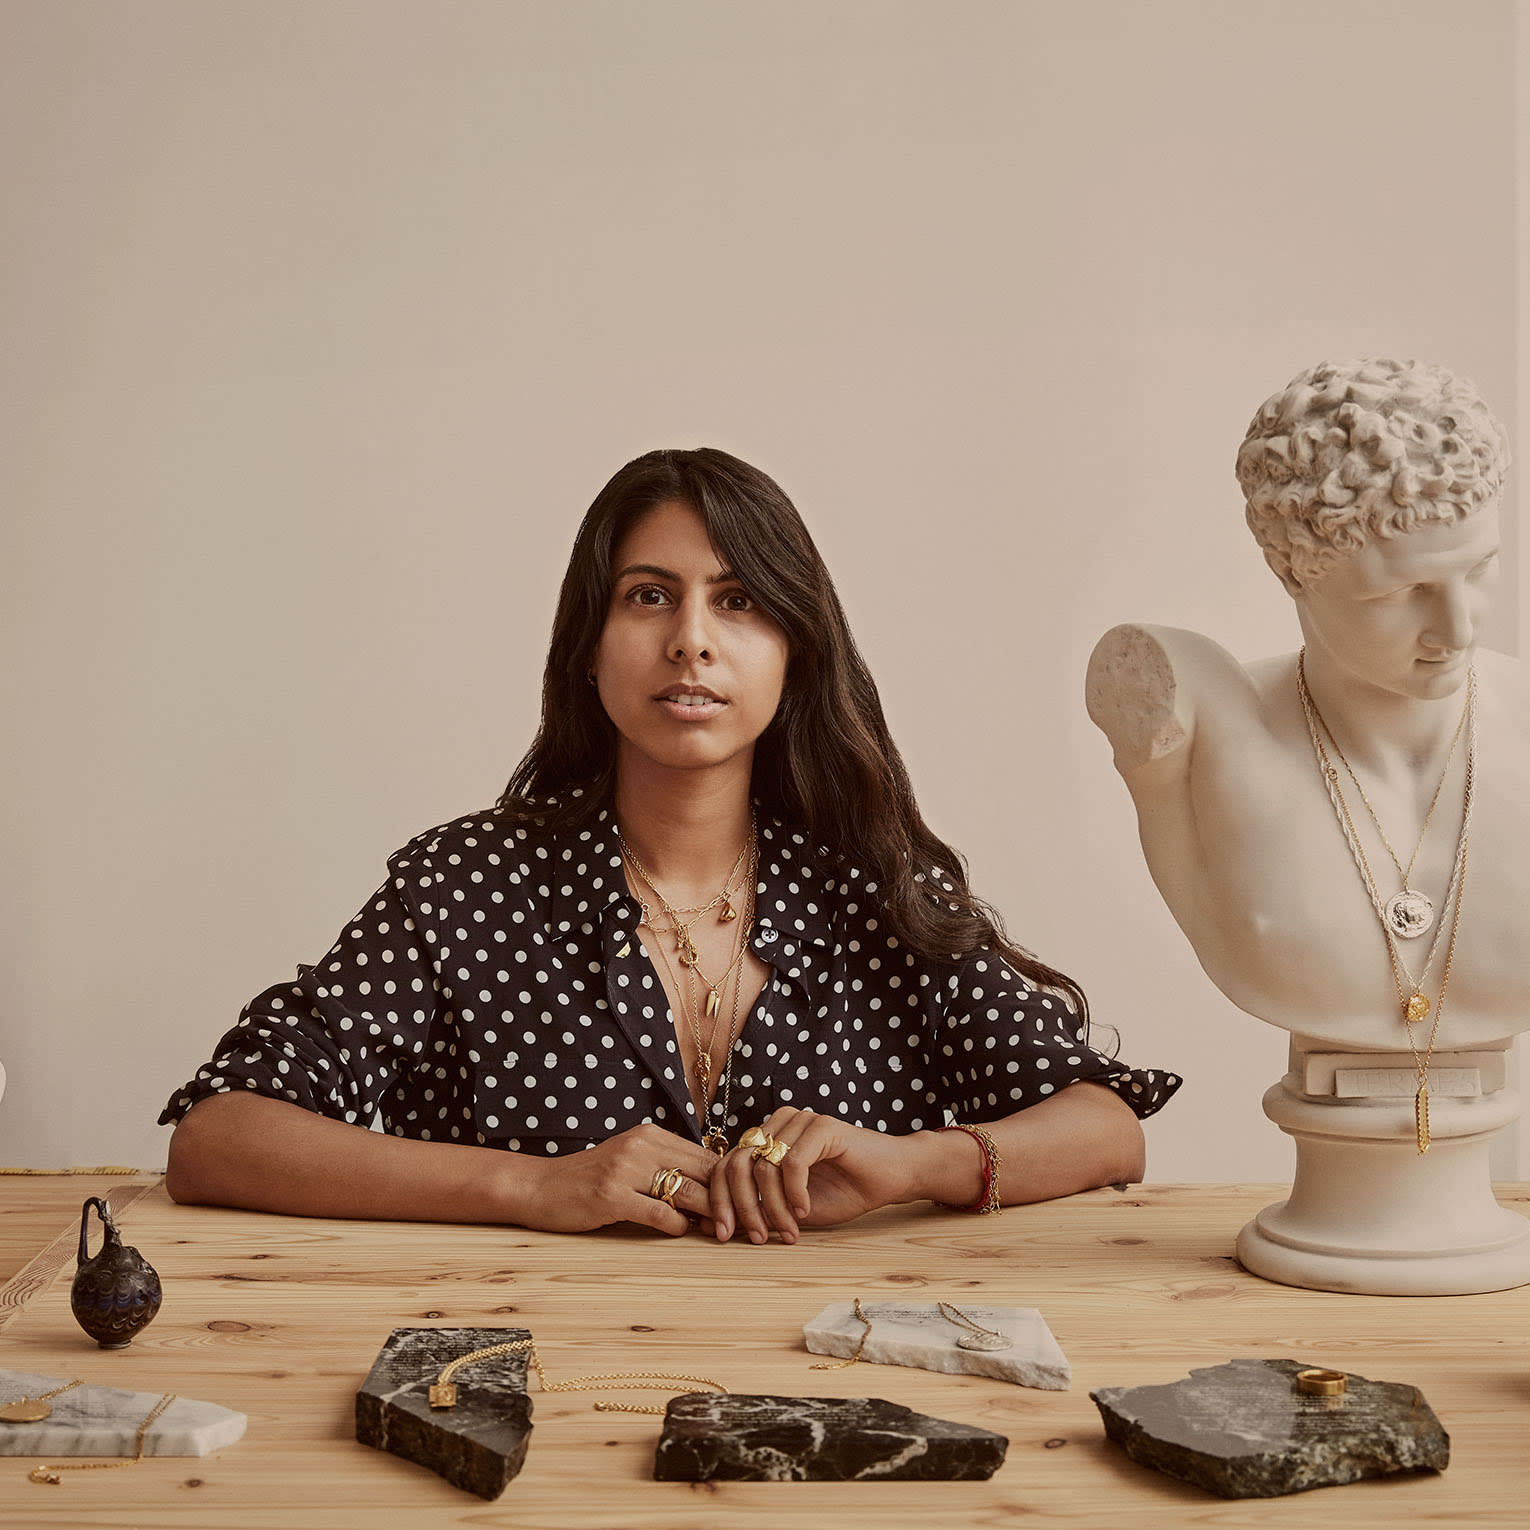 woman with jewellery in front of her and bust statue next to her